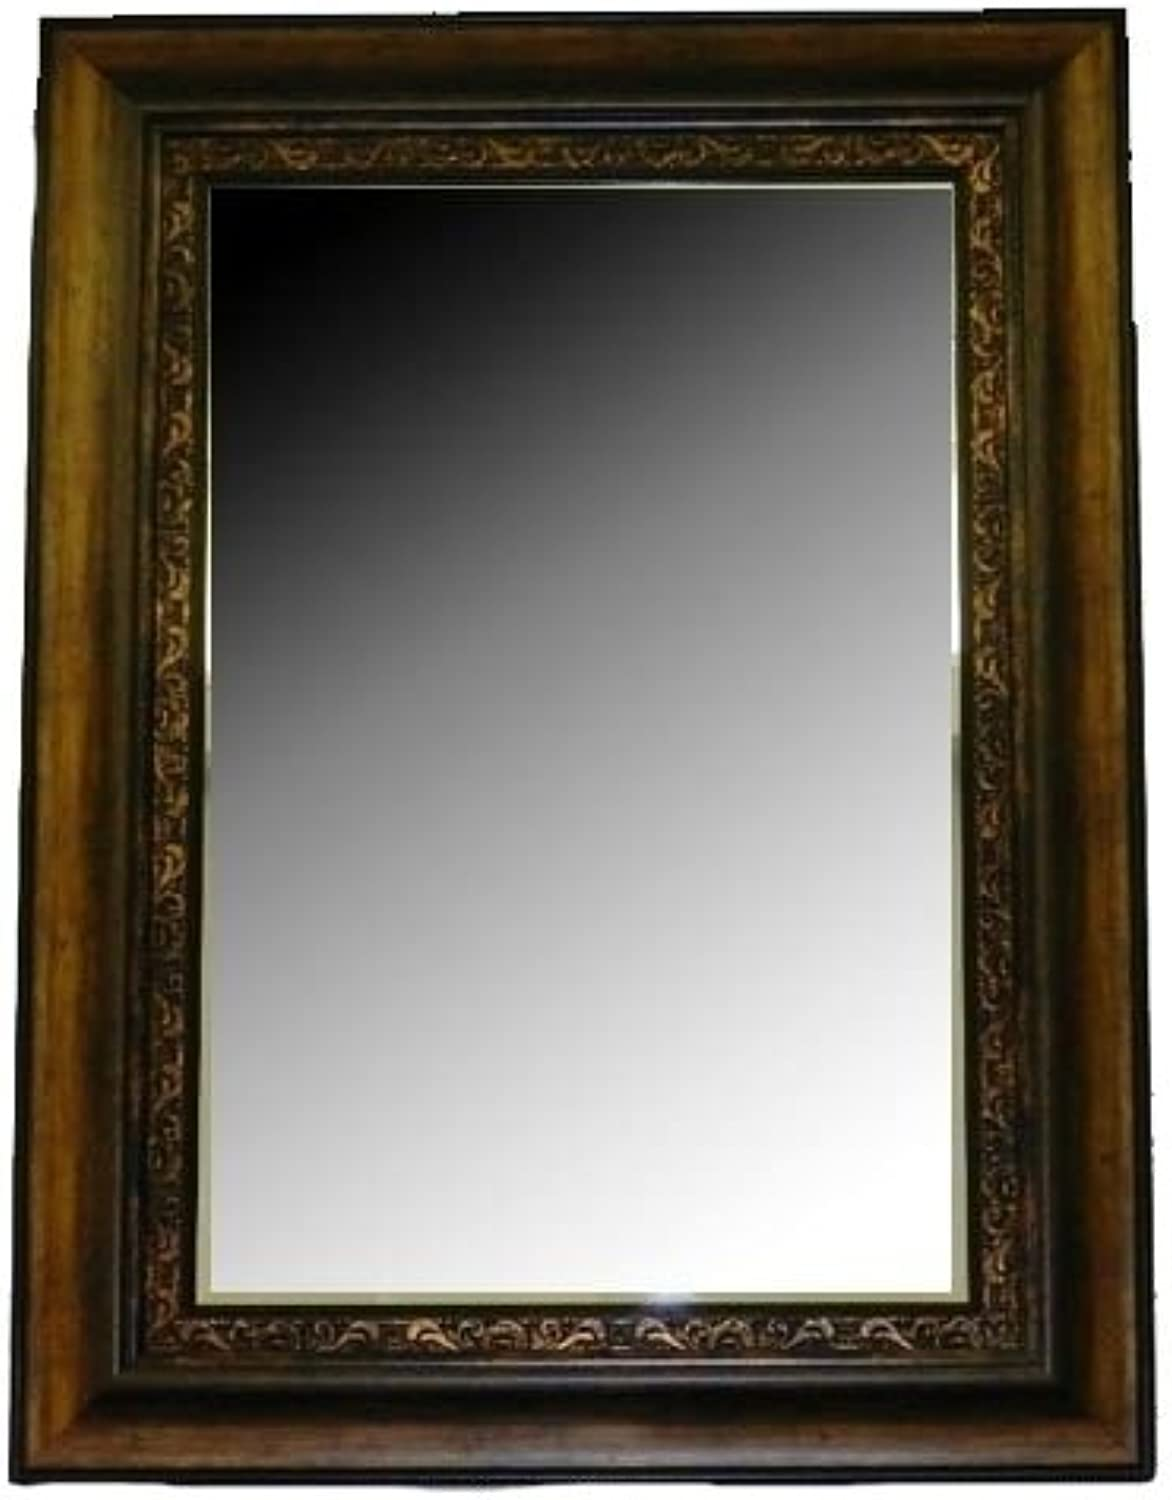 Essential Decor Entrada Collection Mirror, 34.5 by 46 by 0.5-Inch